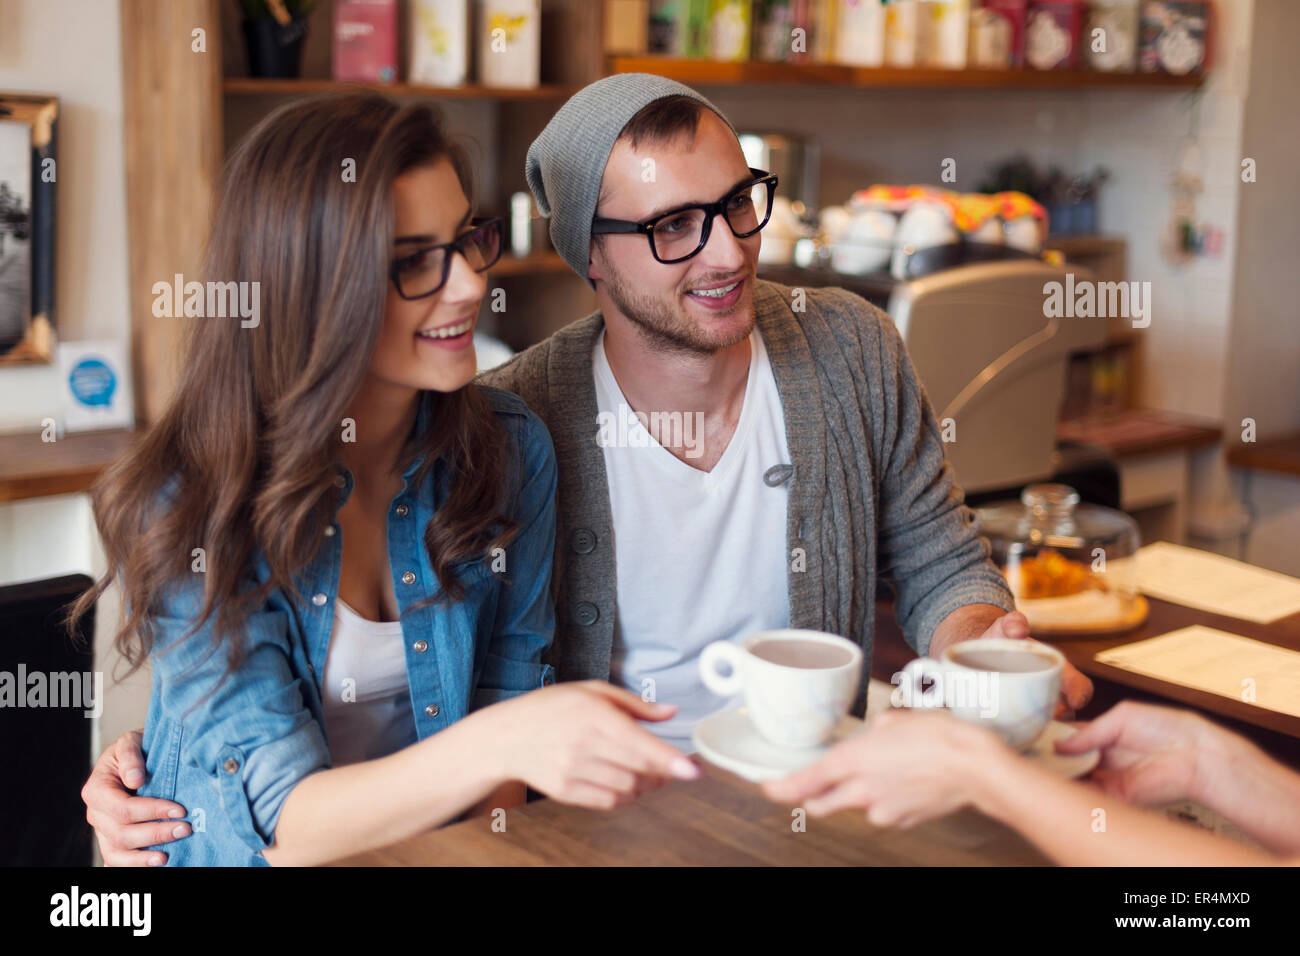 Fashion couple receiving cup of coffee from waitress. Krakow, Poland - Stock Image